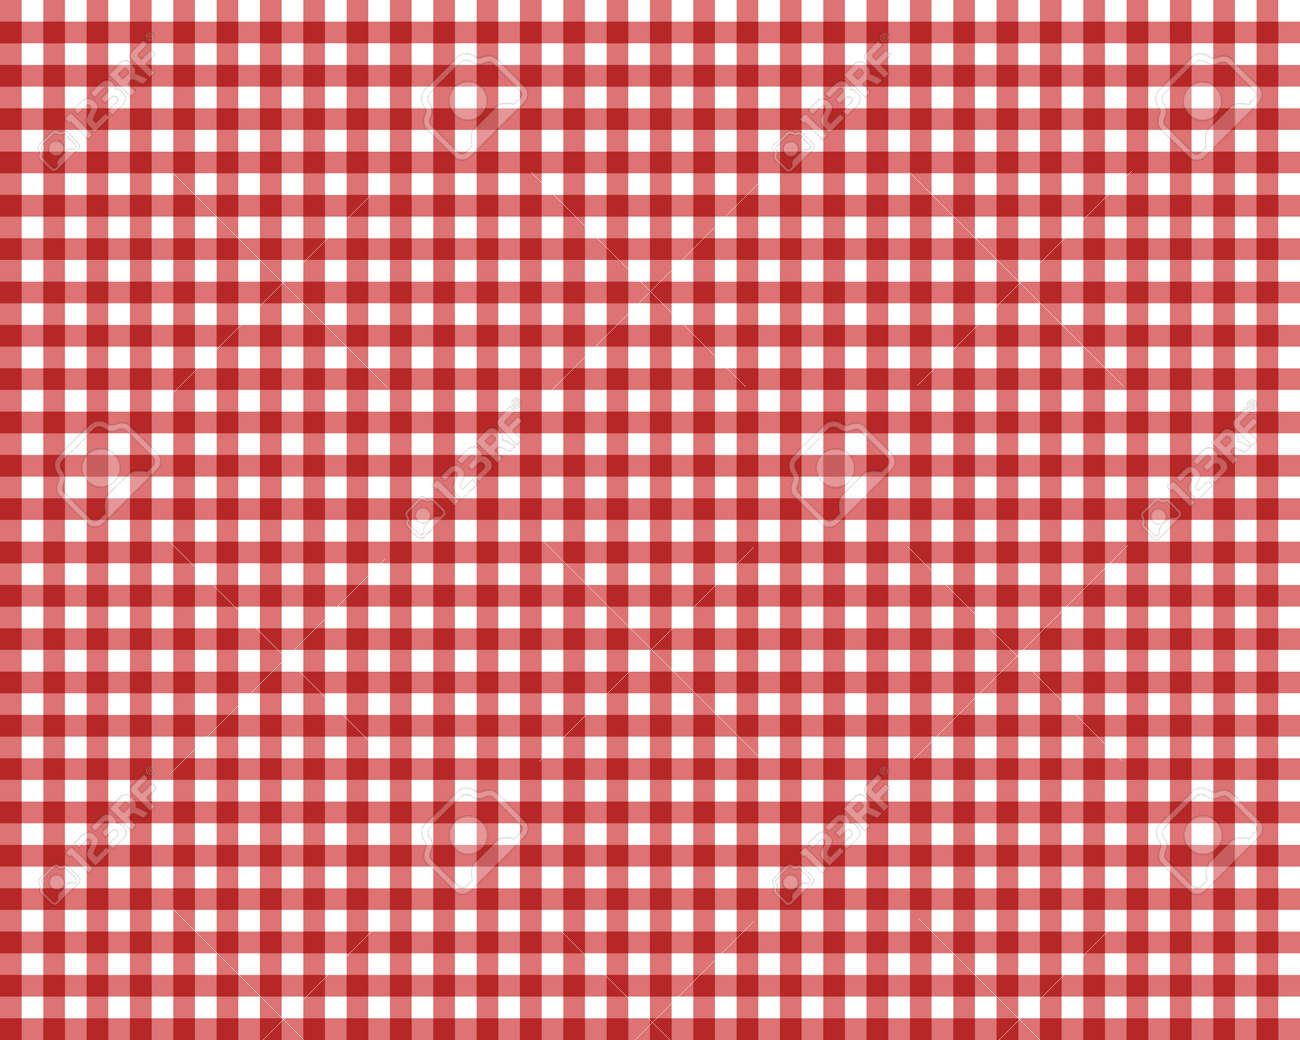 Genial Red Checkered Picnic Tablecloth